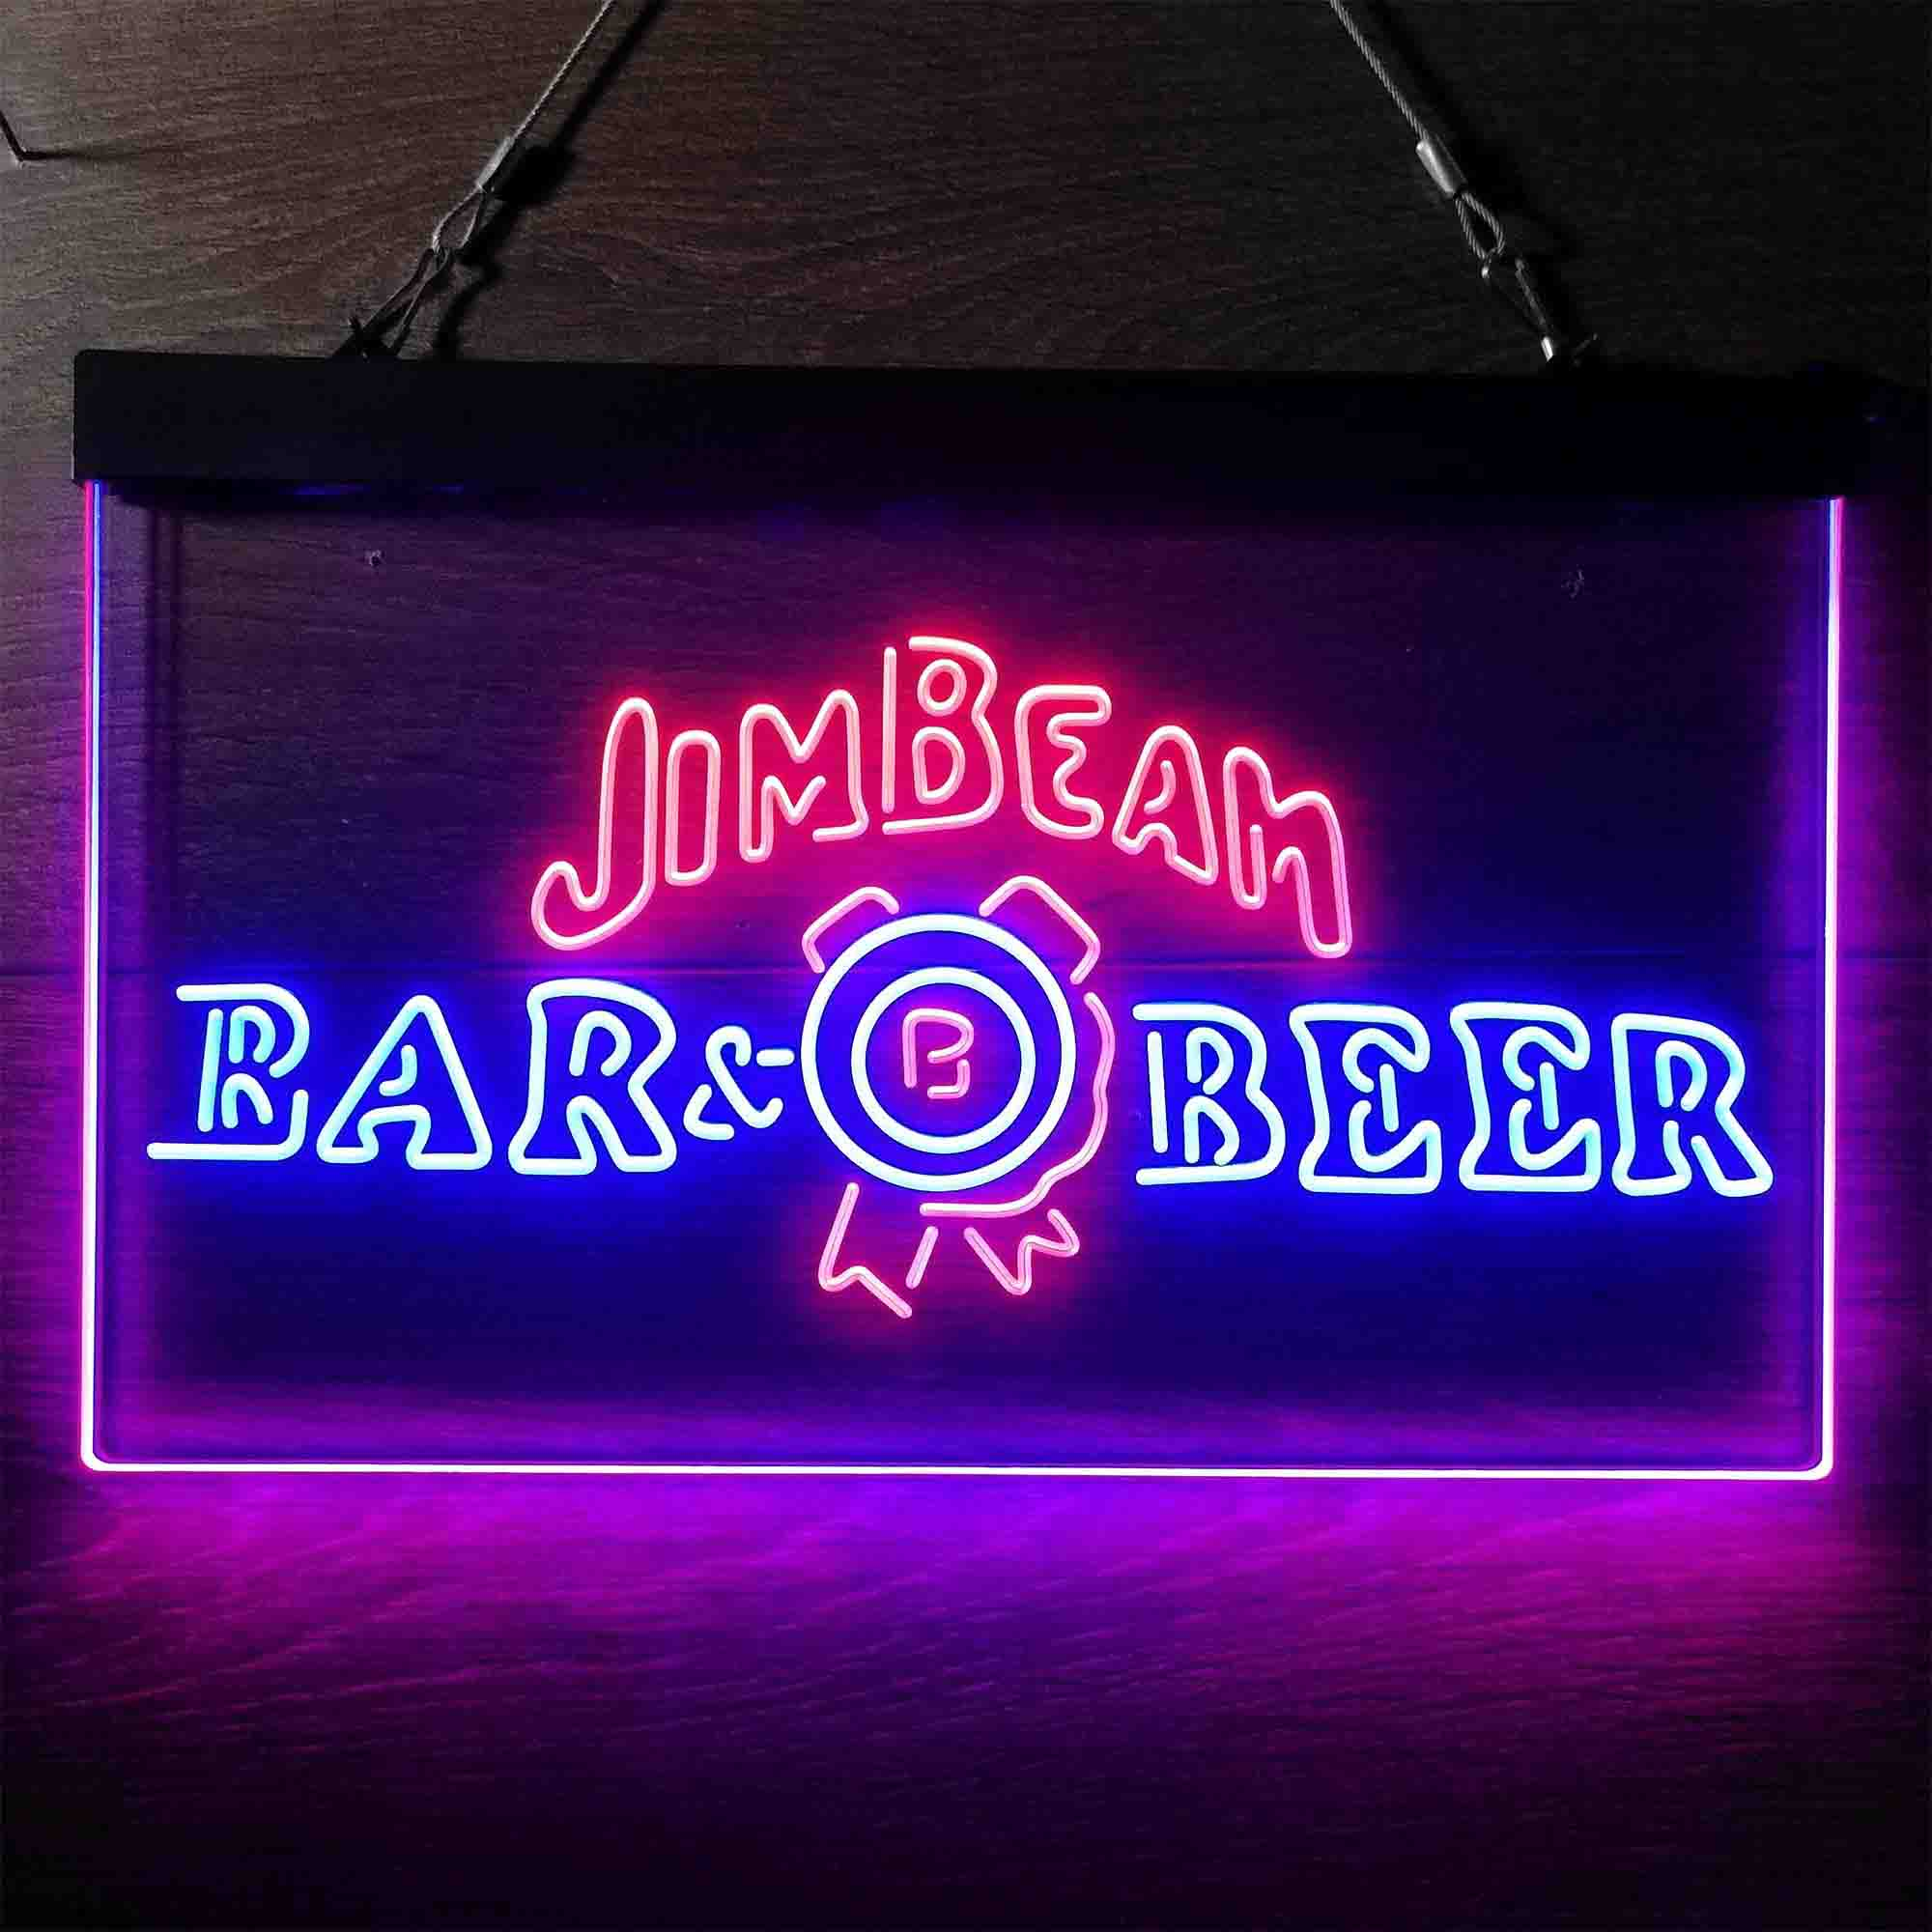 Jim Beam Bar Beer Neon-Like LED Sign